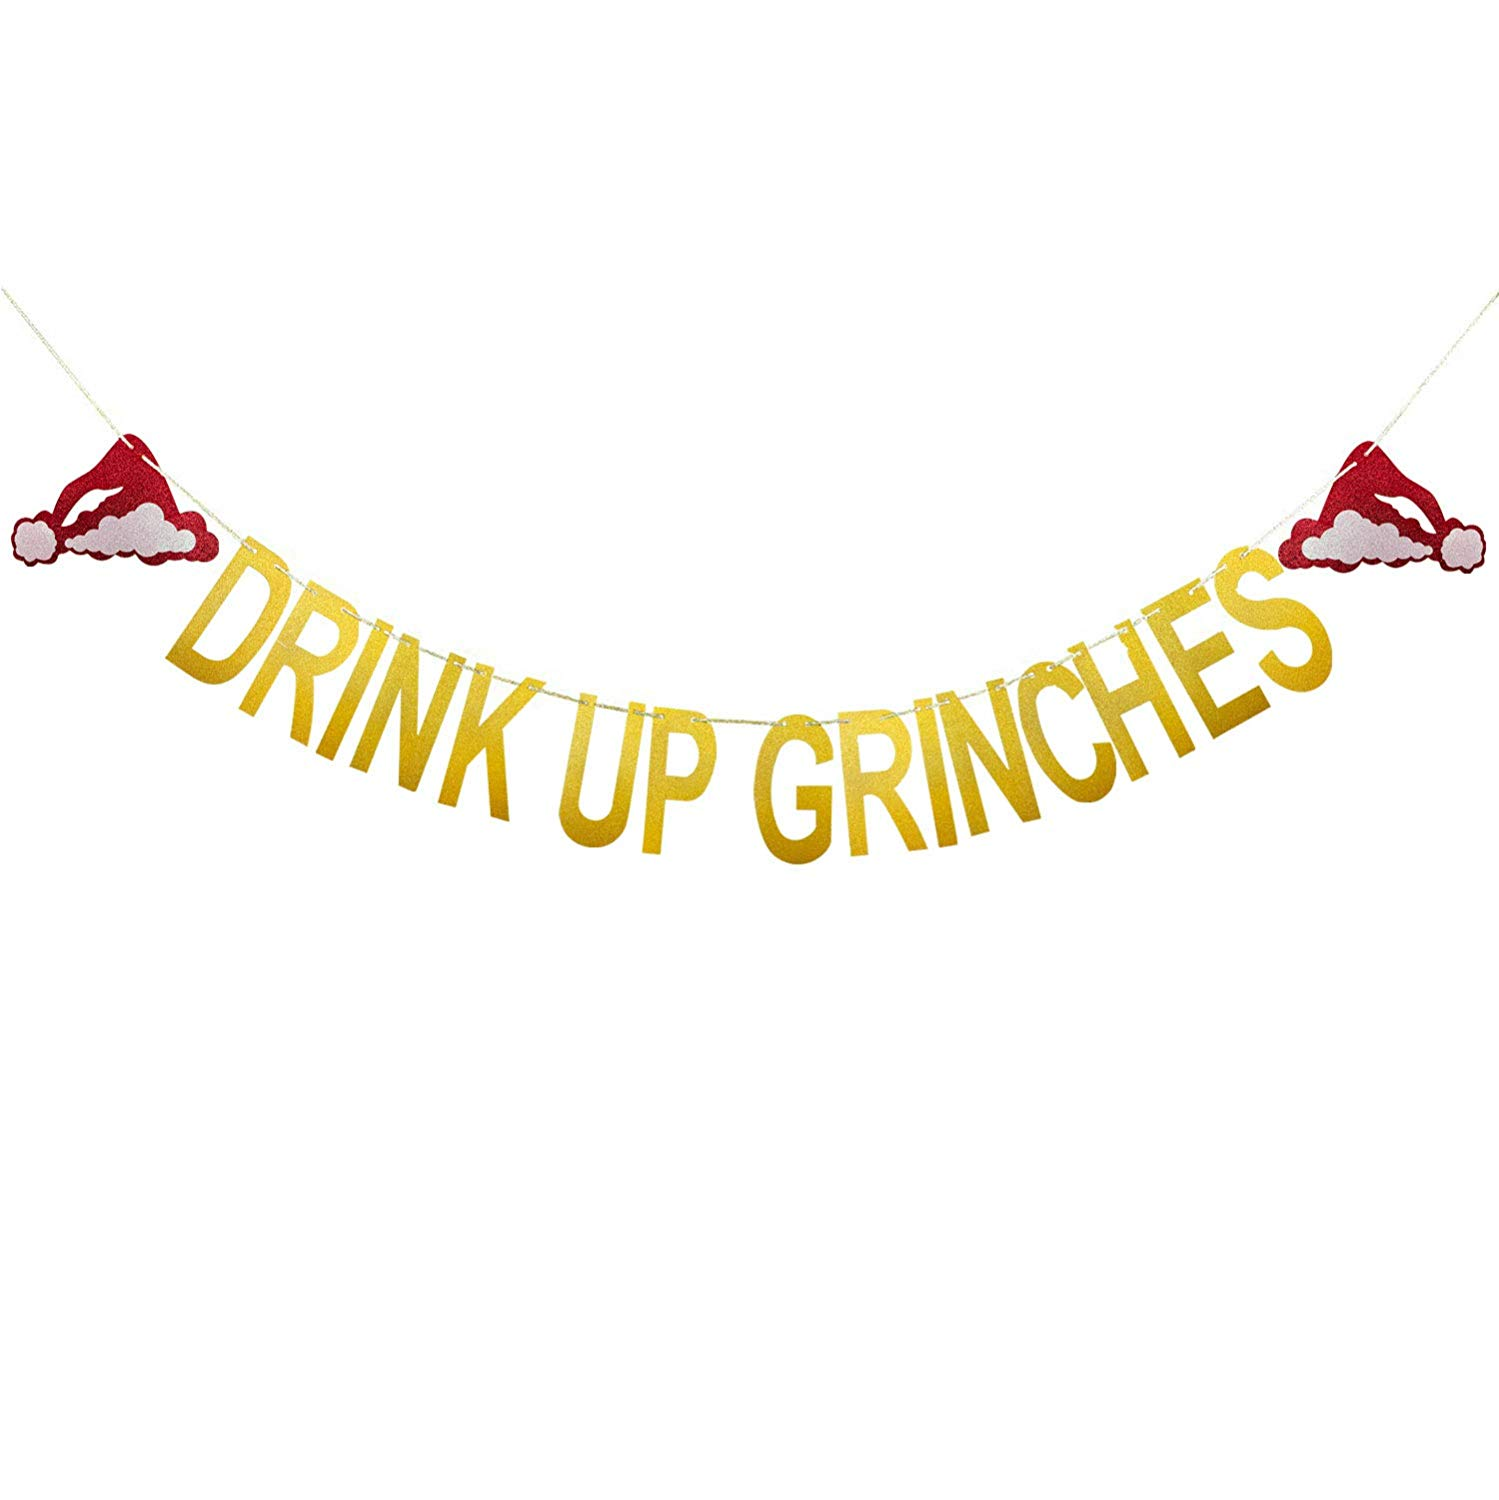 Drink up grinches clipart banner library Aozer Drink Up Grinches Christmas Hat Banner Gold Glittery Party Props  Garland Bunting Sign for Xmas Party Decoration Supplies banner library